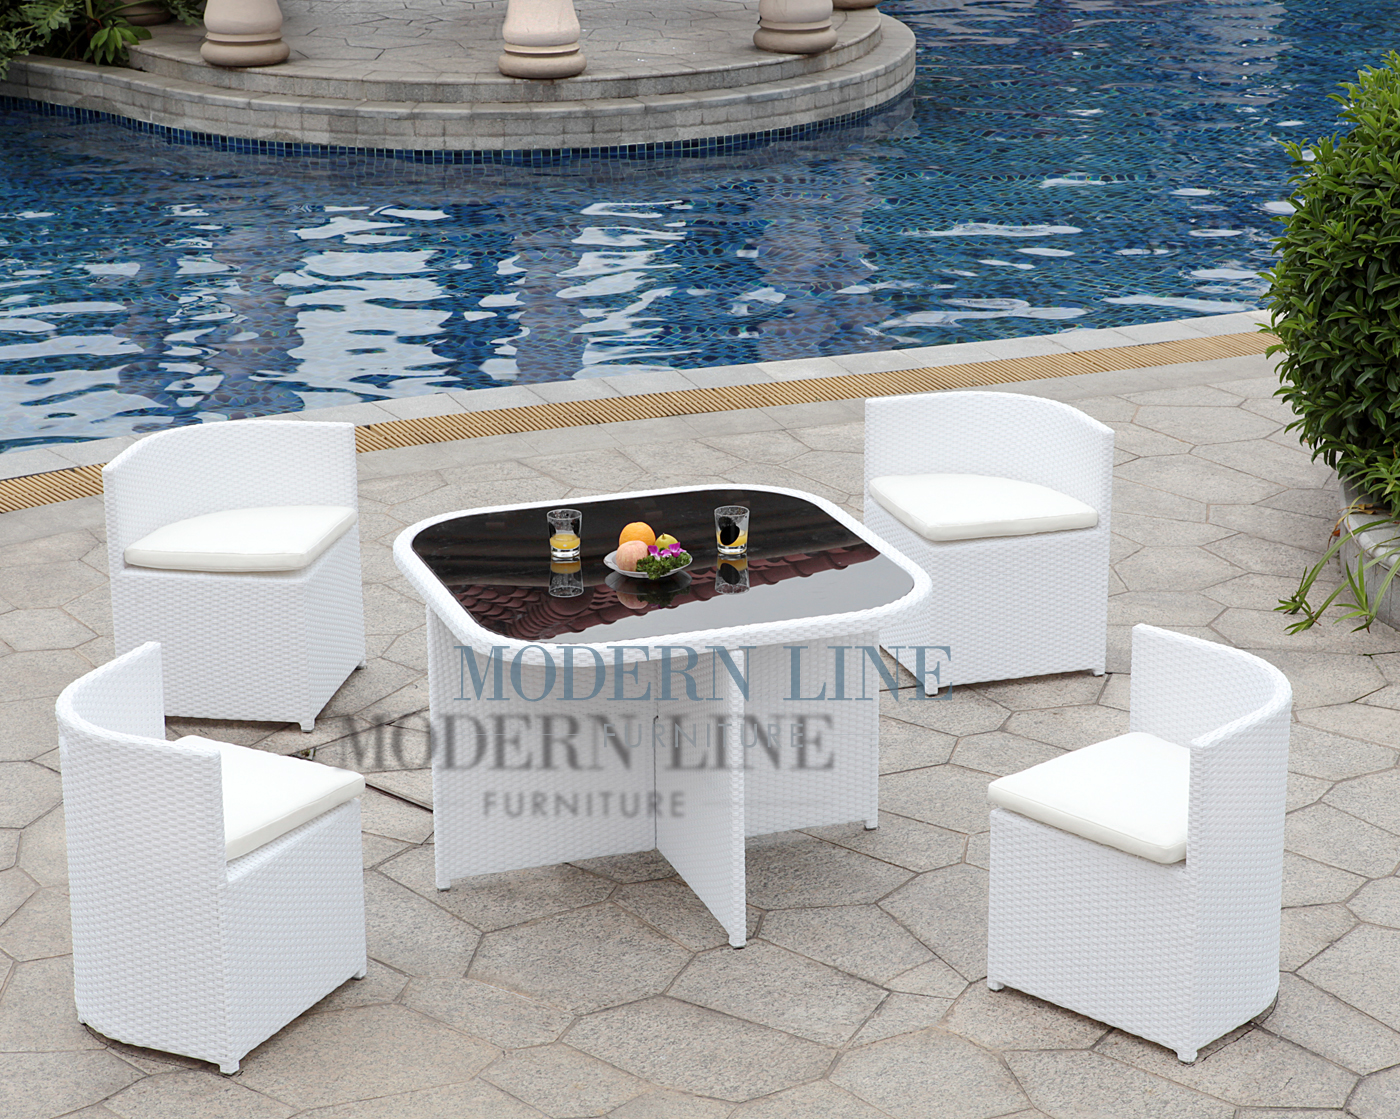 Modern Line Furniture   Commercial Furniture   Custom Made Furniture | Outdoor  Furniture | Outdoor Patio Dining | | Modern All In One White Rattan Patio  ...